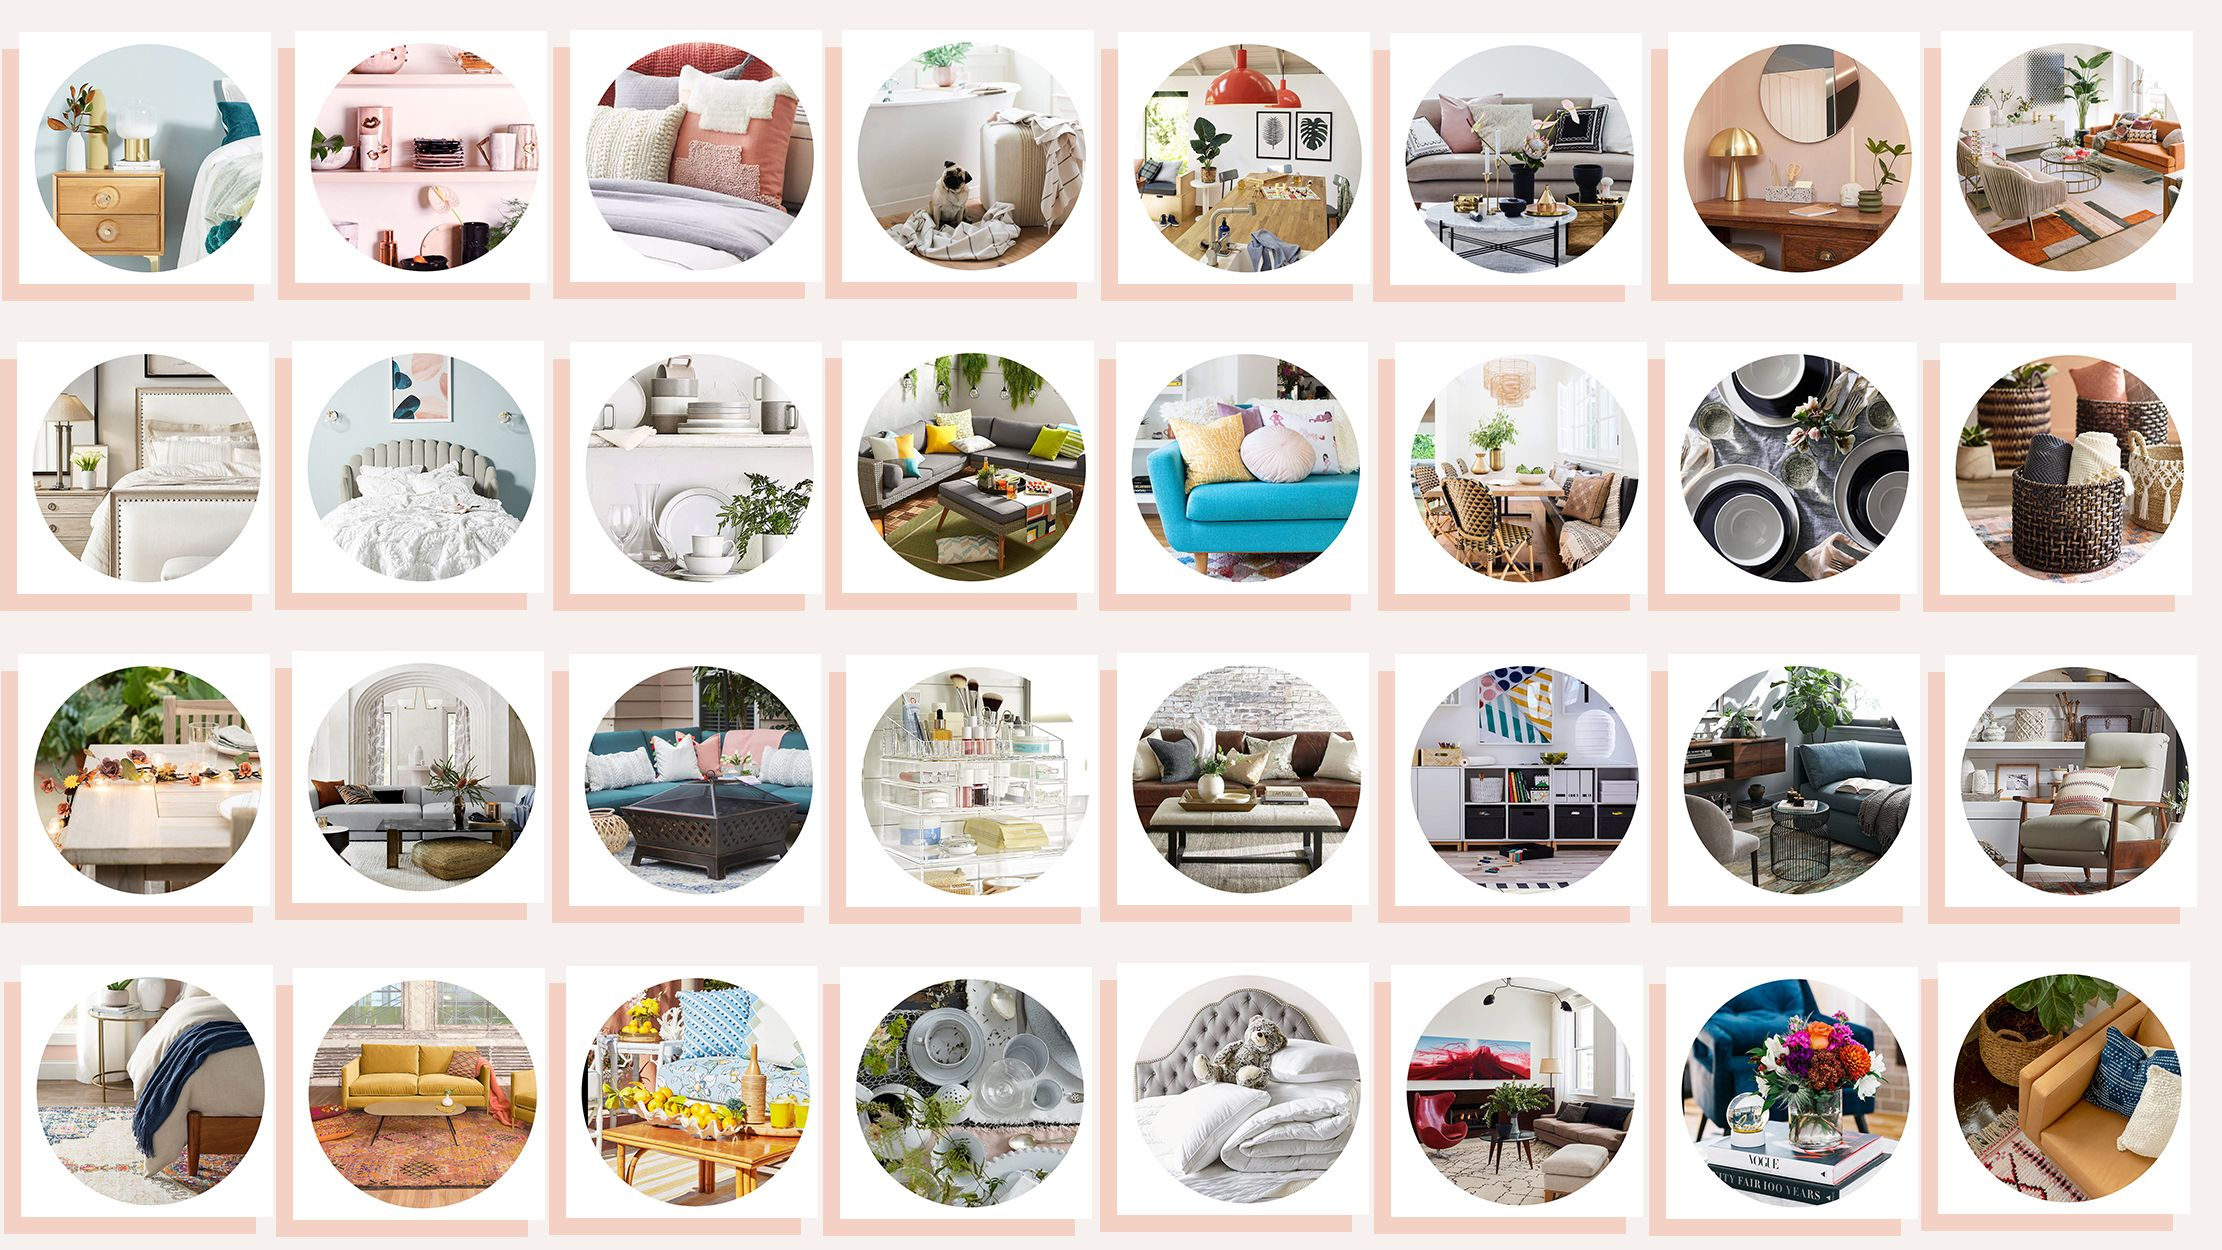 images?q=tbn:ANd9GcQh_l3eQ5xwiPy07kGEXjmjgmBKBRB7H2mRxCGhv1tFWg5c_mWT Ideas For Target Home Decor Brands @house2homegoods.net